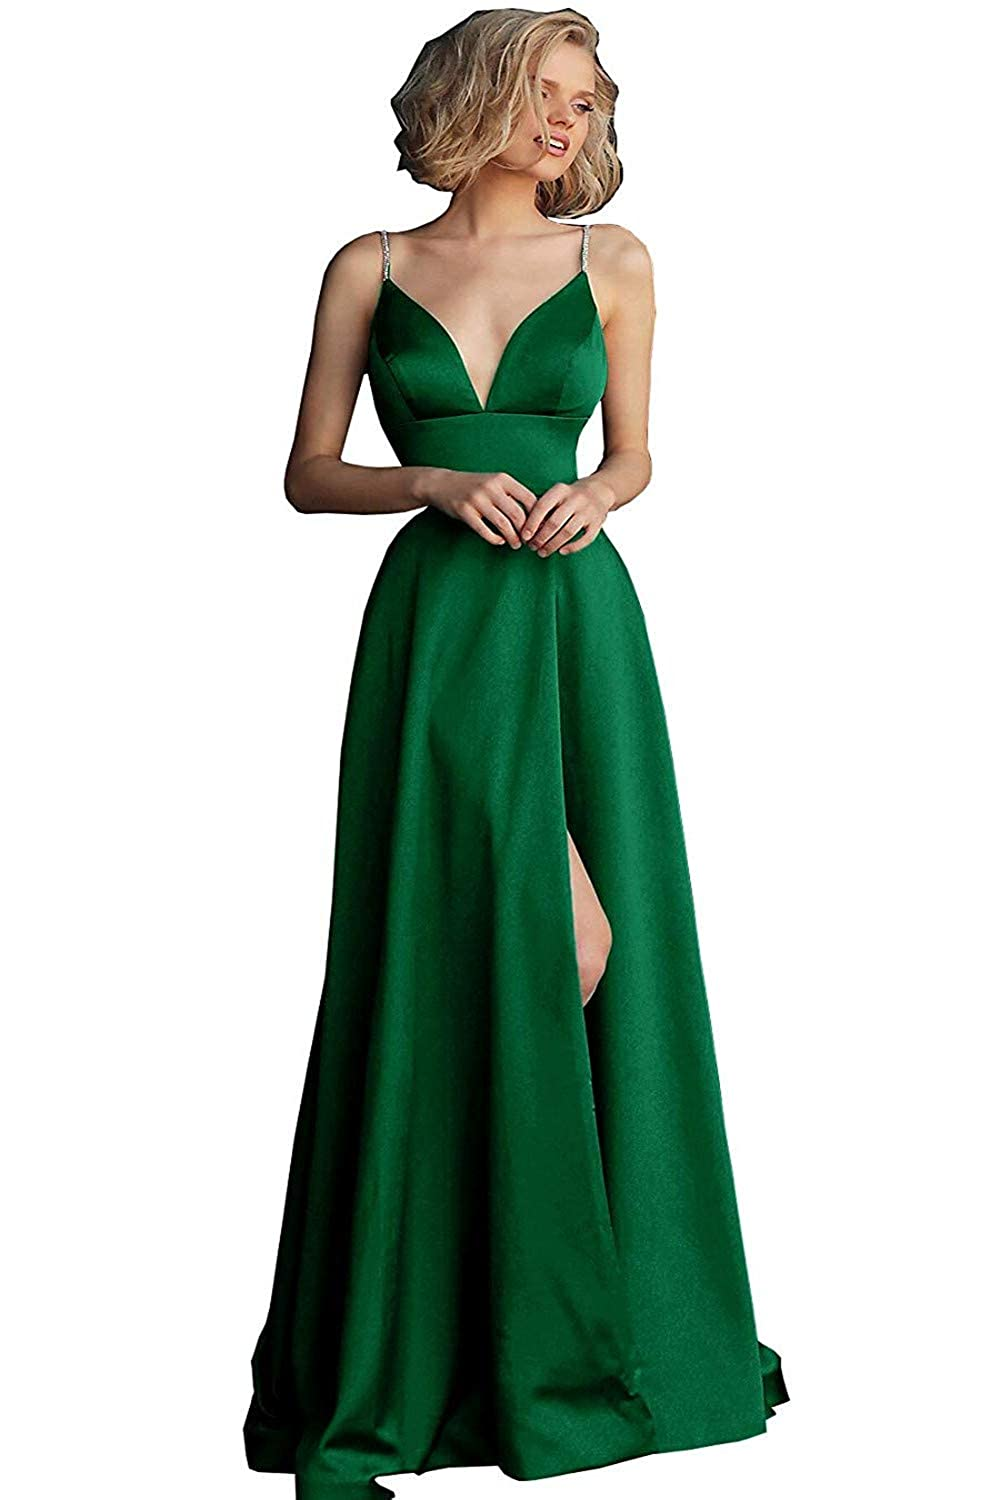 Green Sulidi Womens Sexy Deep V Neck Satin Prom Dresses 2019 Beaded Formal Evening Party Gowns Long L028